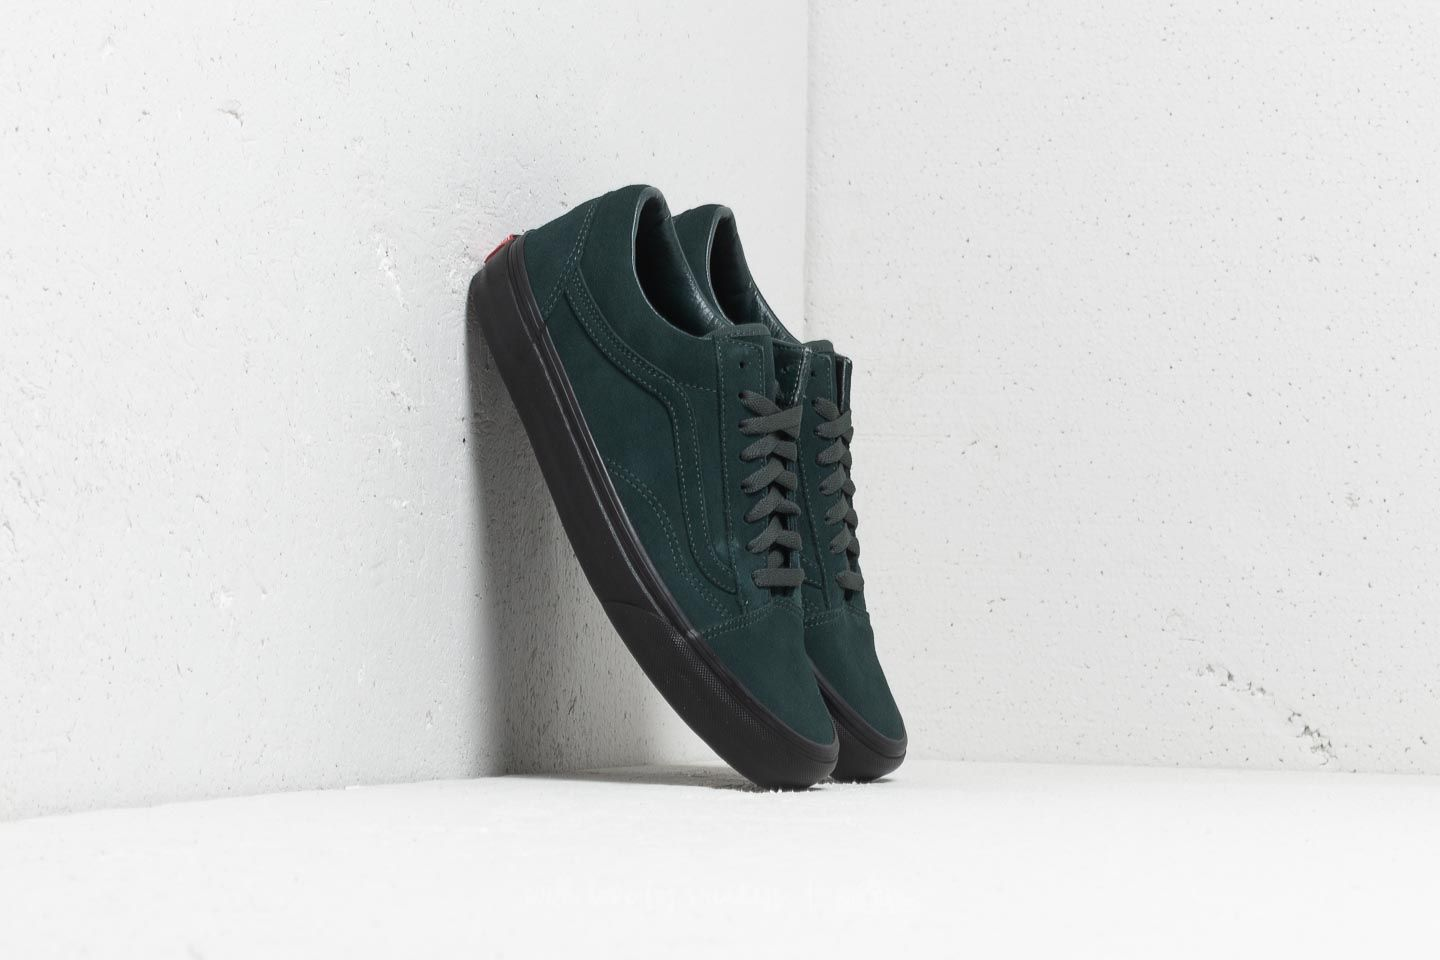 05548f0eeb7 Vans Old Skool (Black Outsole) Darkest Spruce  Black